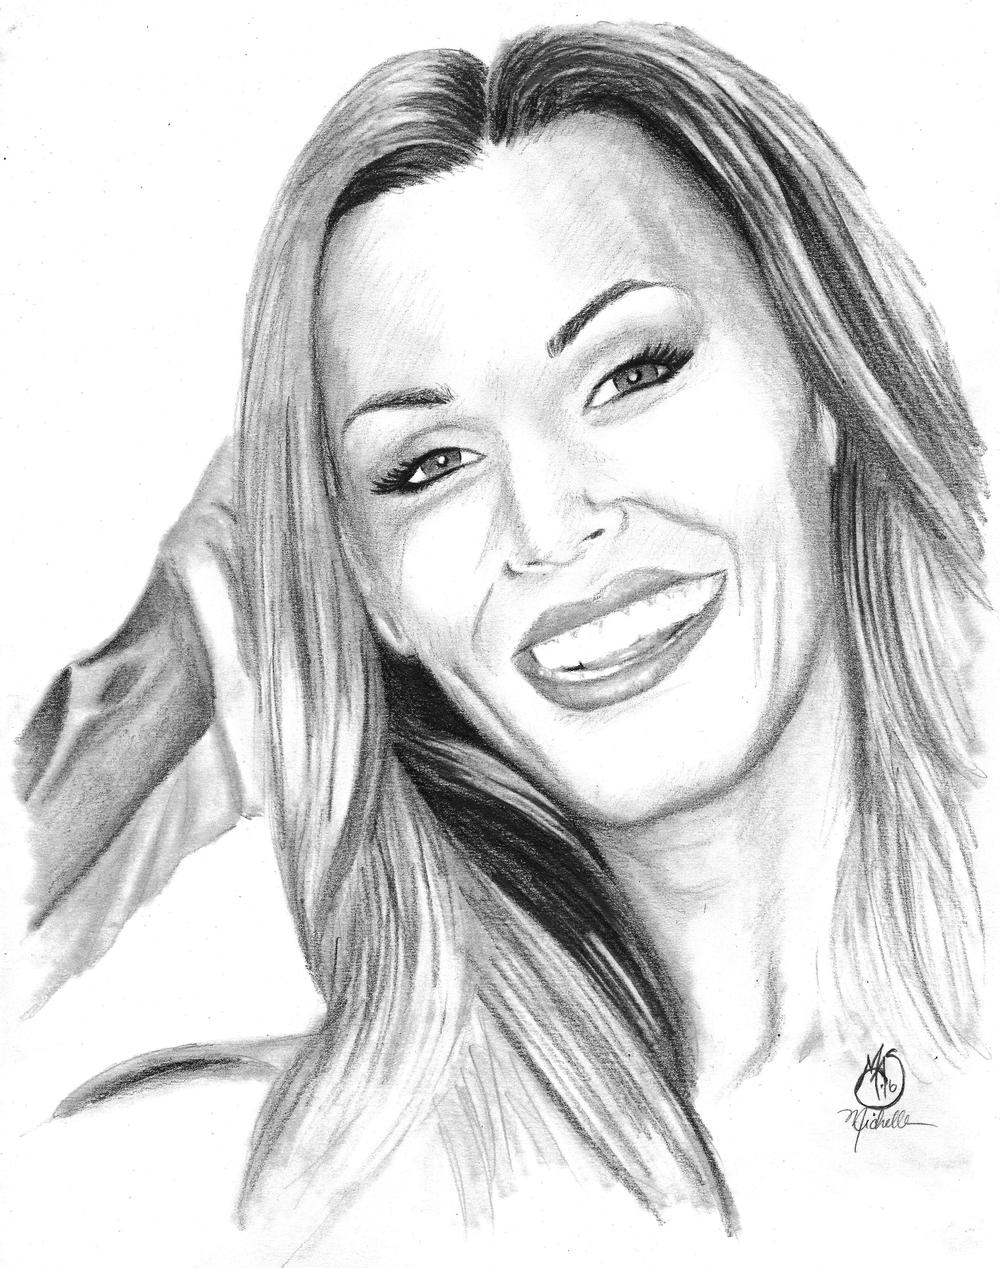 Michelle Shepperd,  Tanya Tate , 2016, graphite on vellum, 14 x 11 in